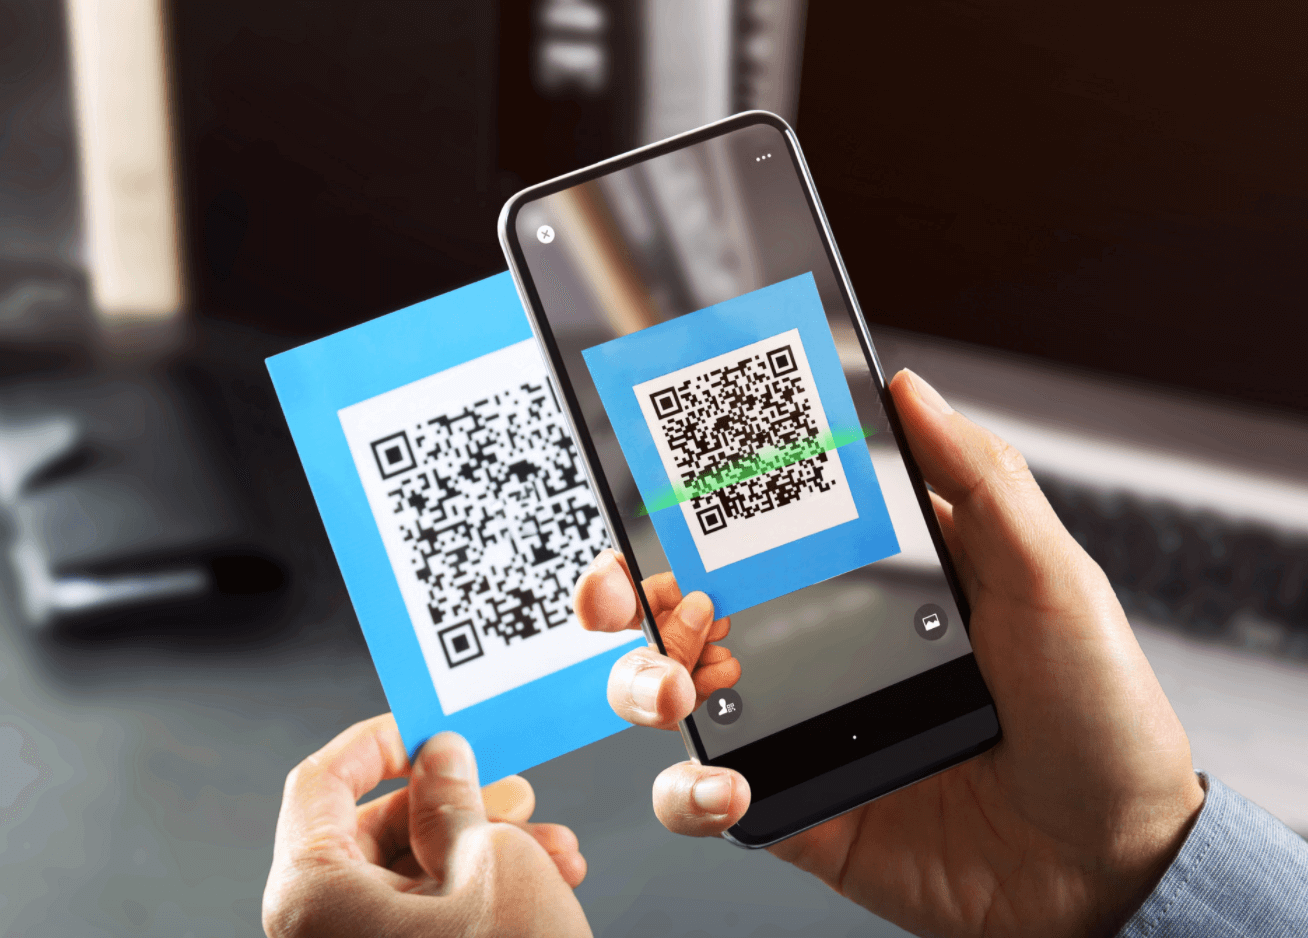 A hand with a phone scanning a printed QR code